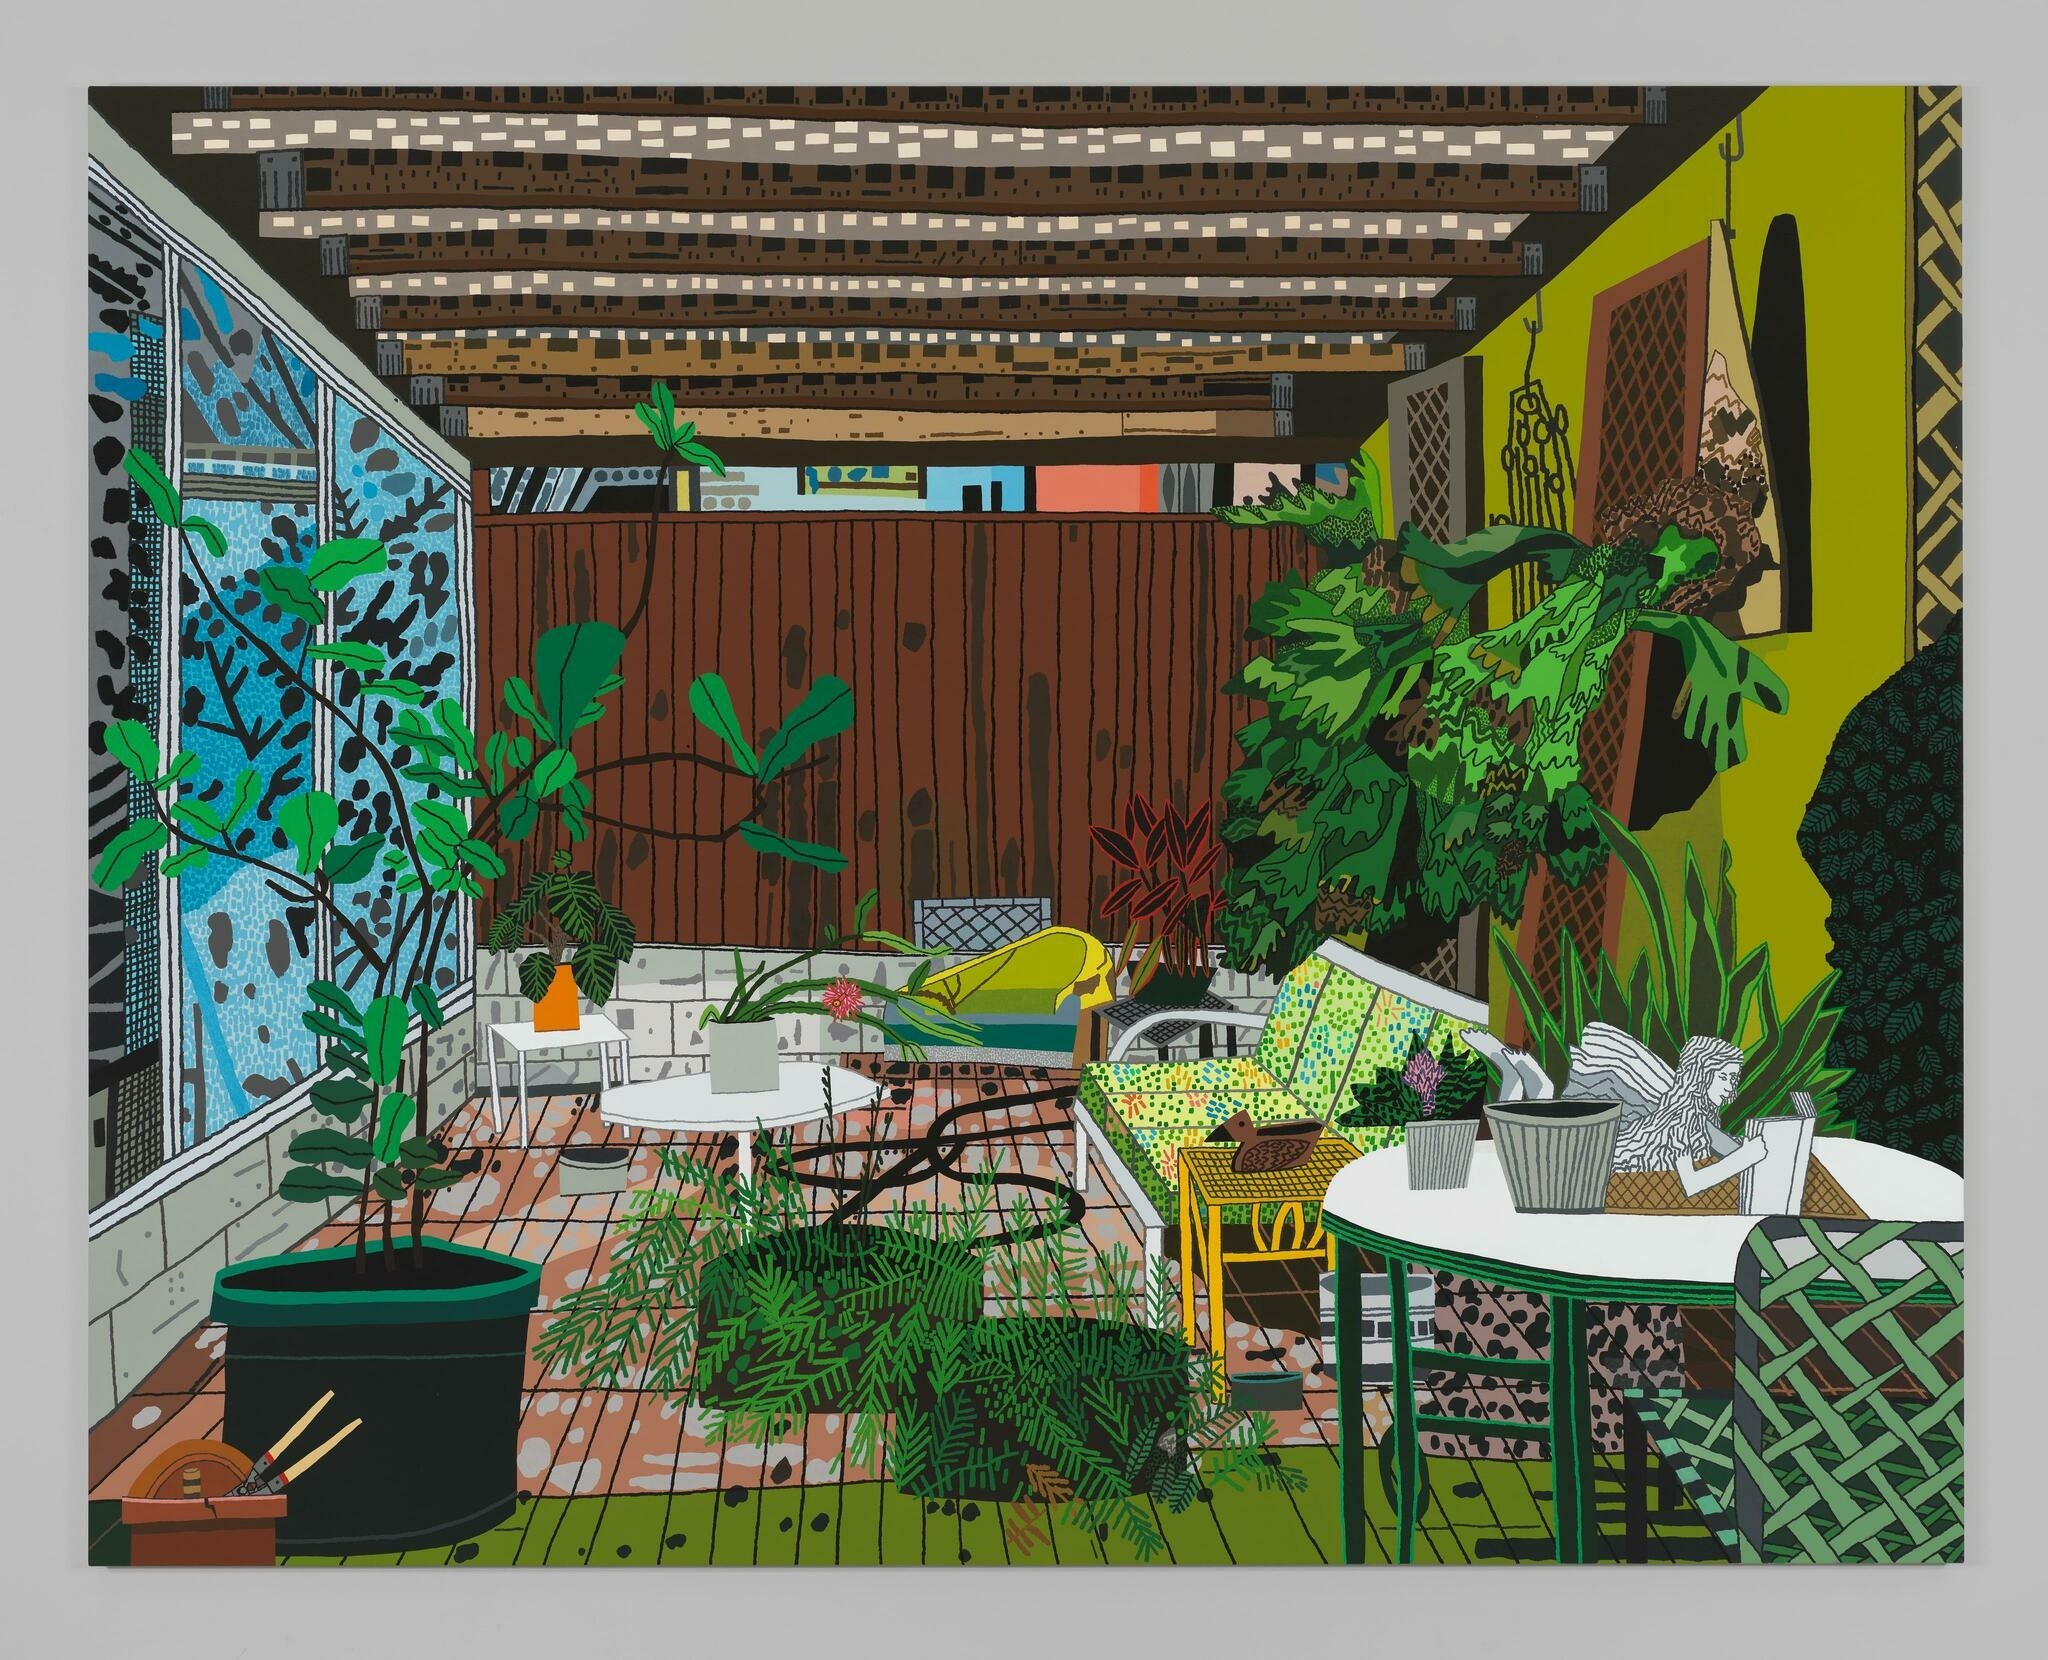 A cluttered, leisurely room with low seating and an array of potted plants